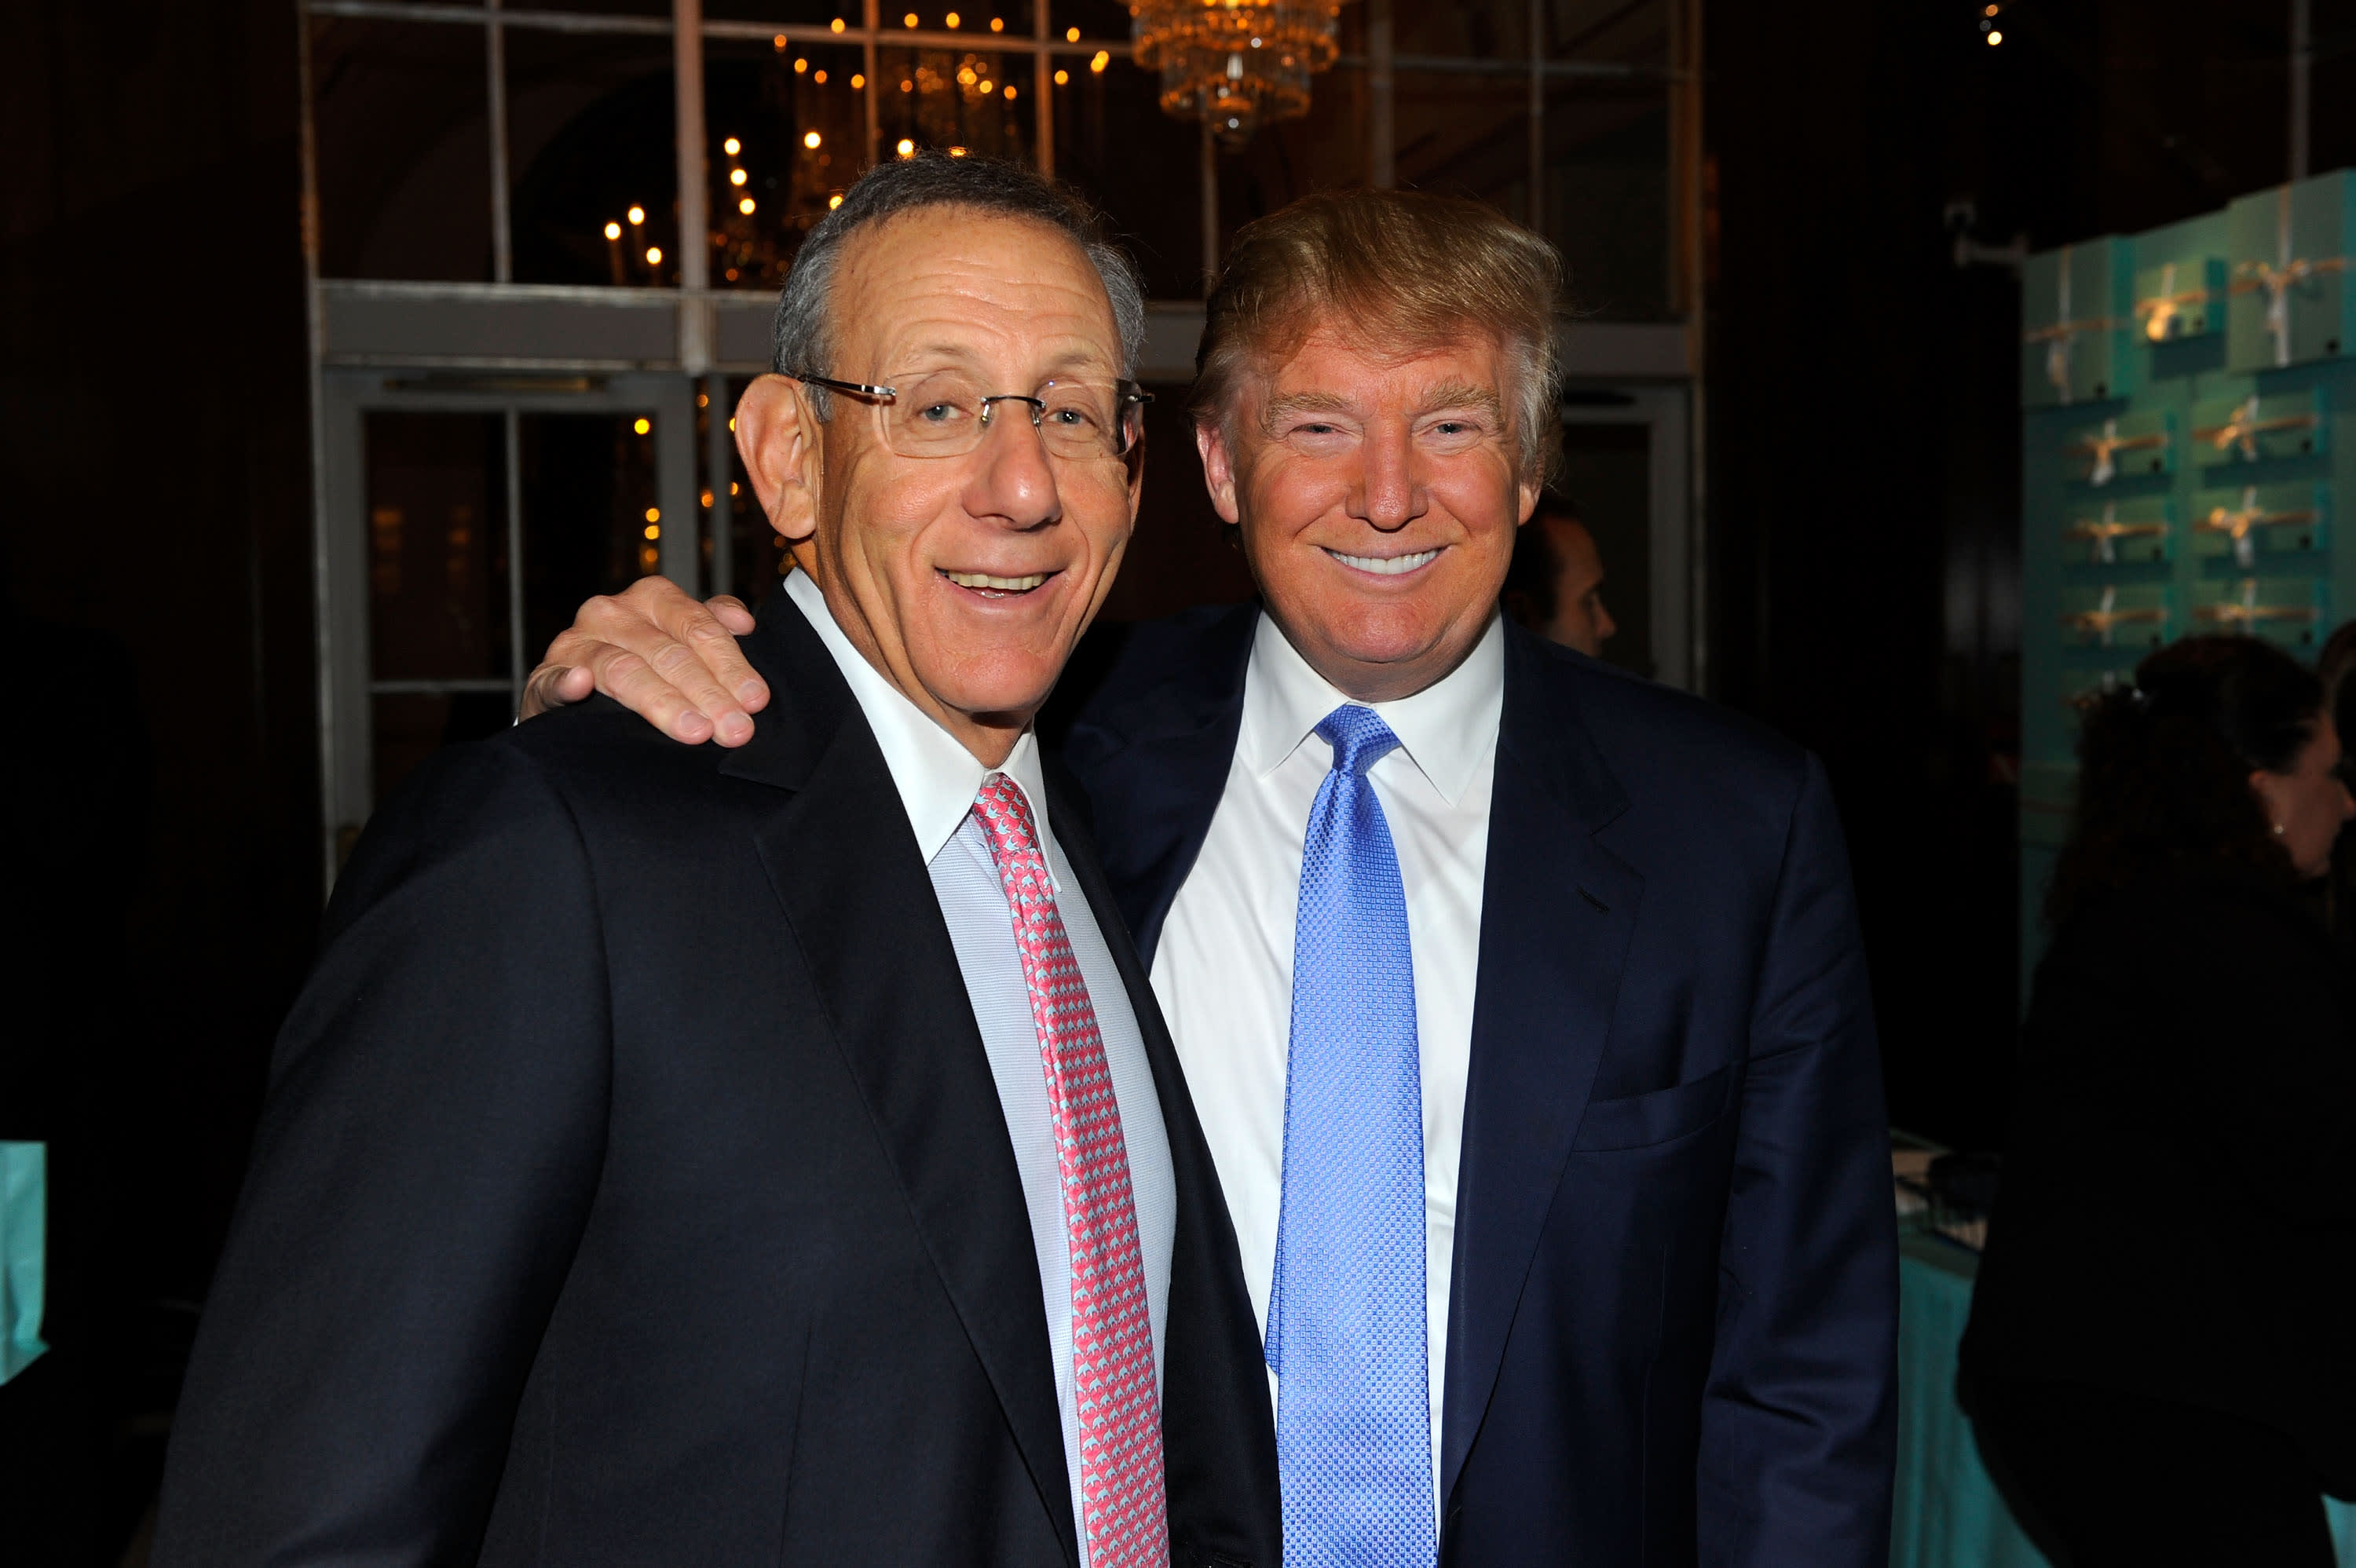 Trump's money ties to NFL owners go much deeper than Dolphins' Stephen Ross